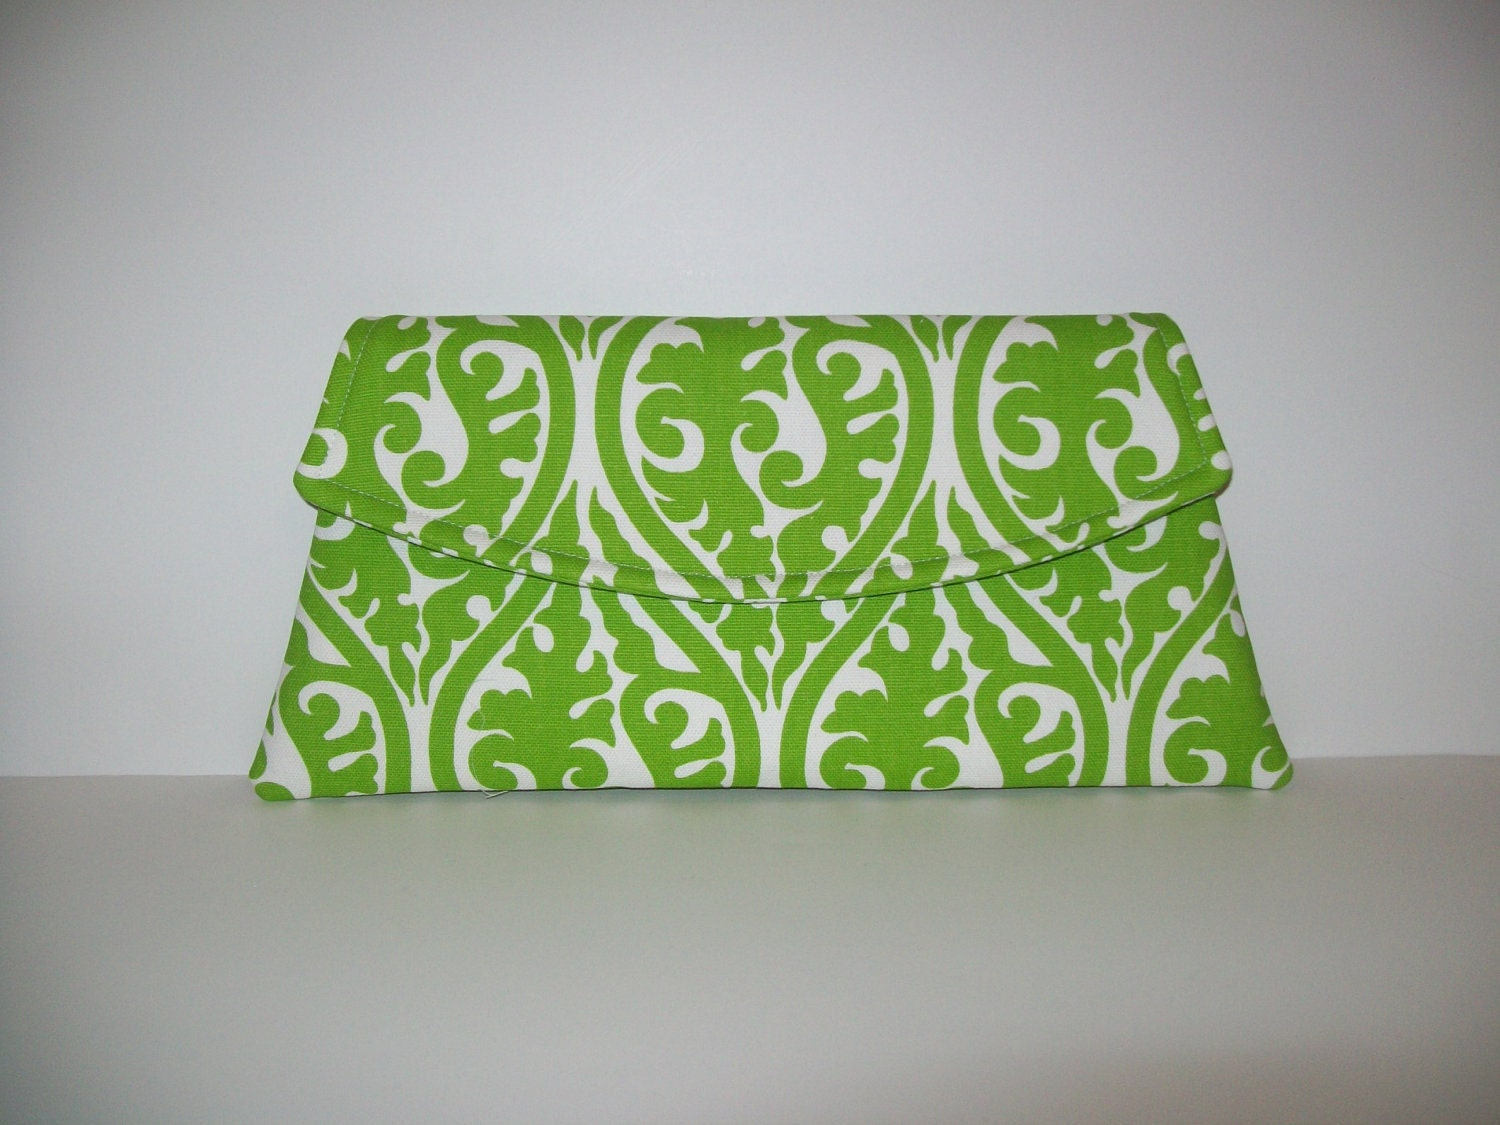 Classic Angled Clutch - Chartreuse Green and White Kimono Print - MSG FabriCreations